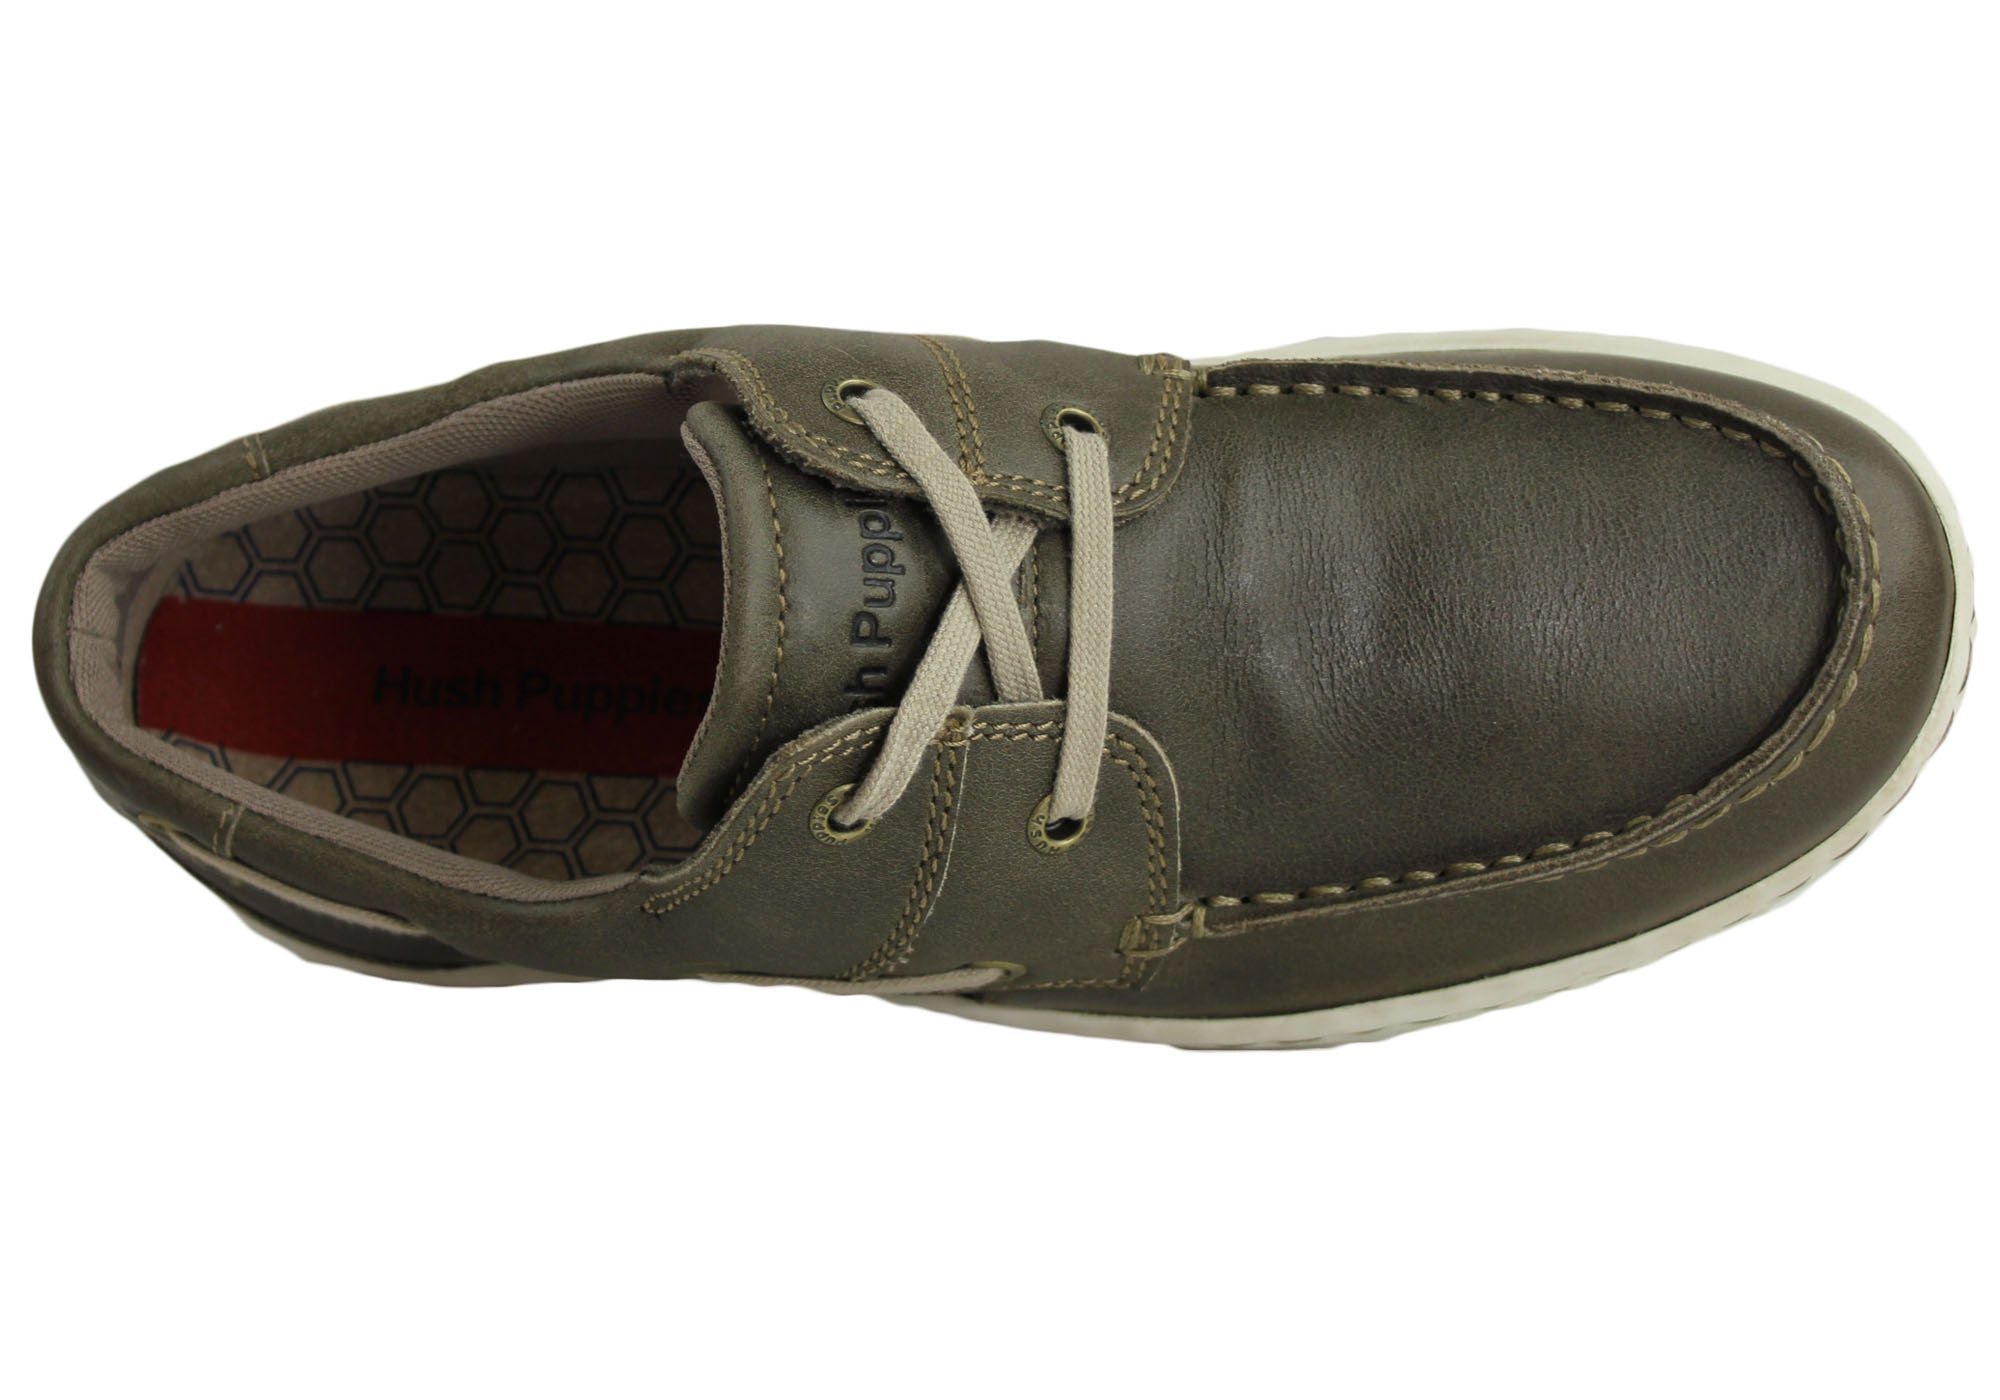 Hush Puppies Caught Mens Casual/Boat Shoes